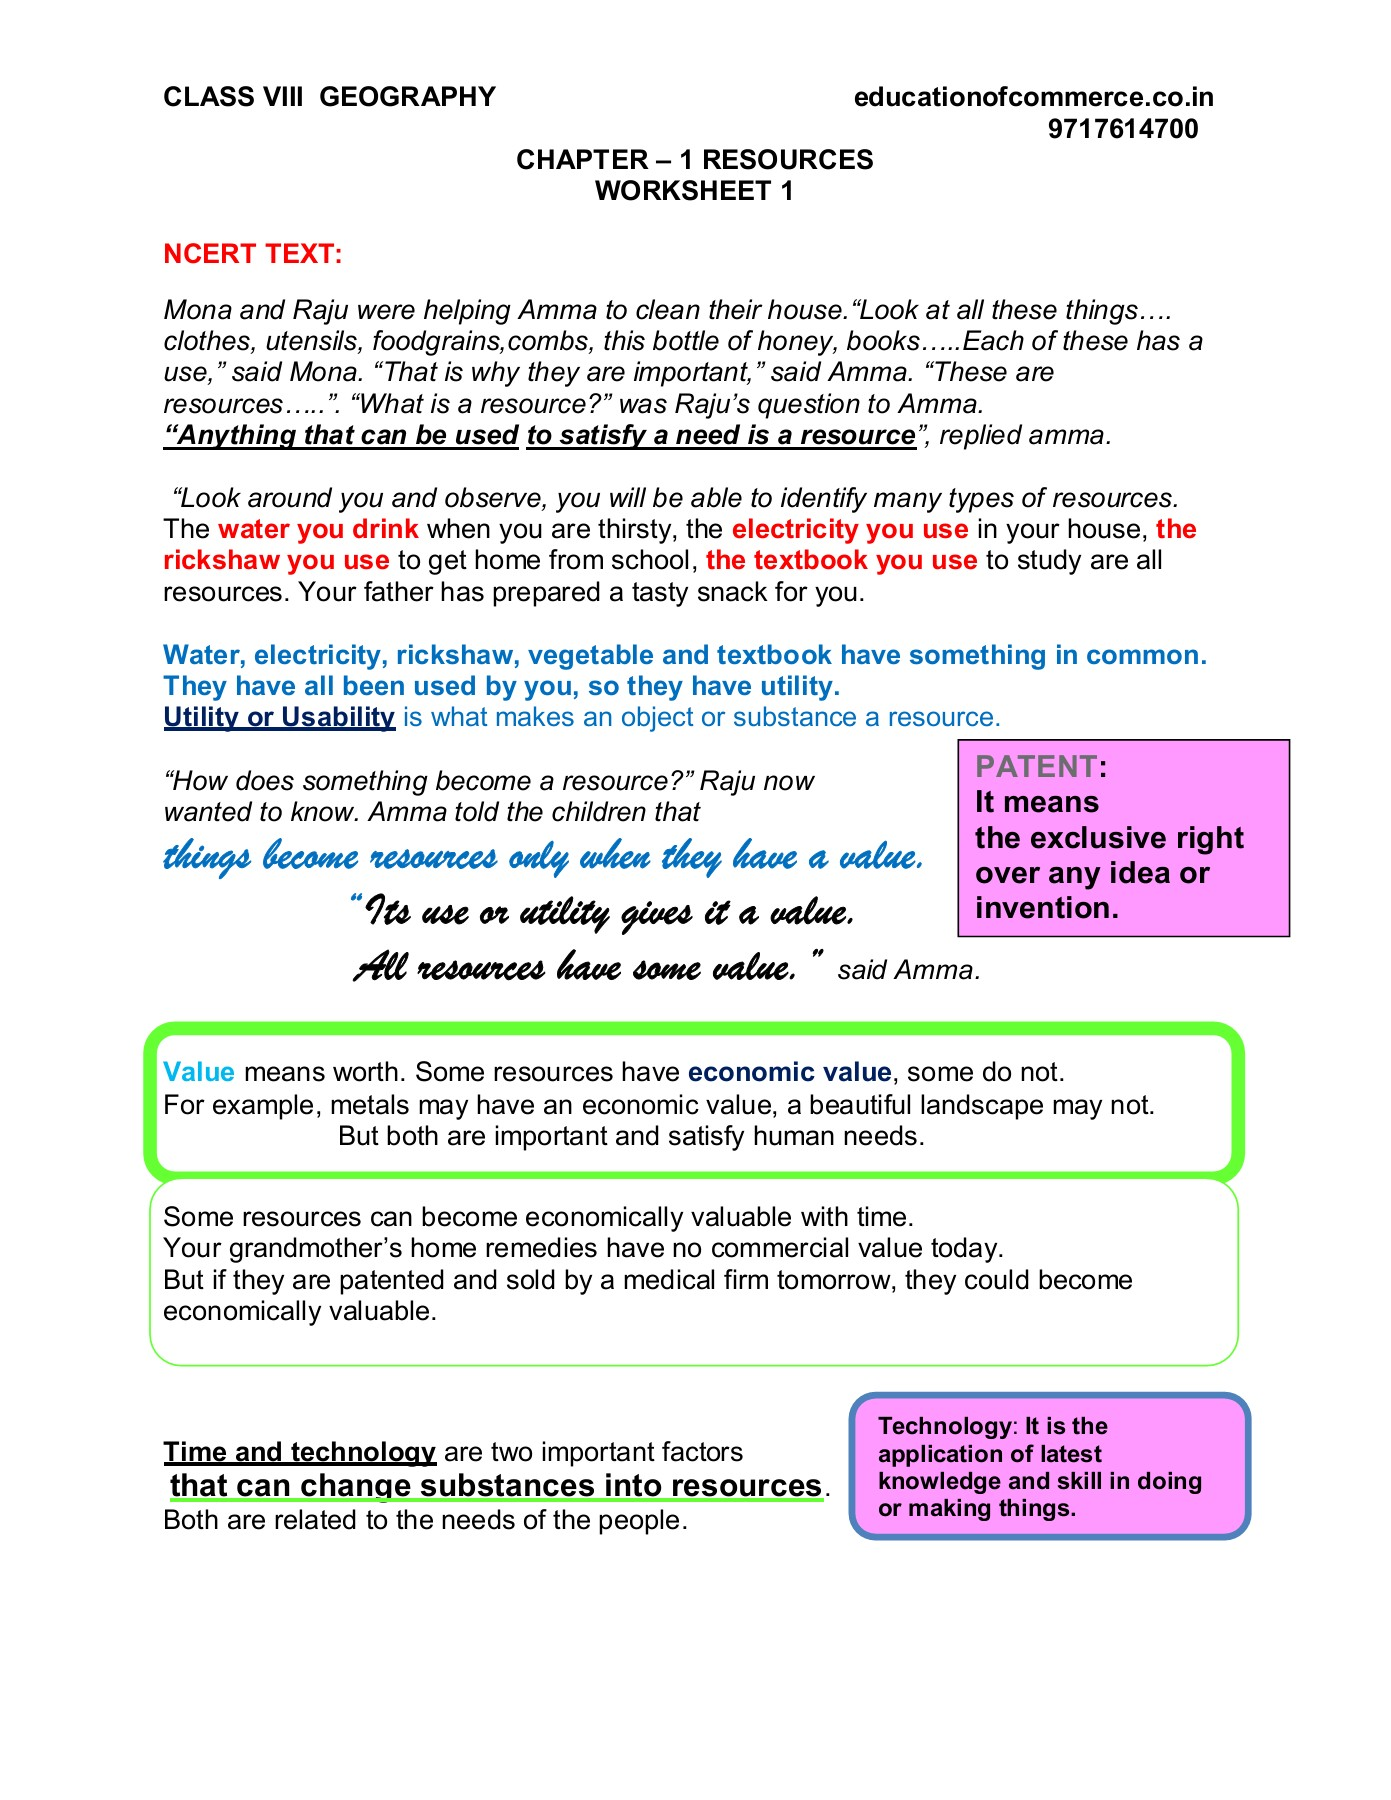 hight resolution of Worksheet 1 - Geography (Grade VIII) - Chapter - 1 (Resources) - Topic  Utility